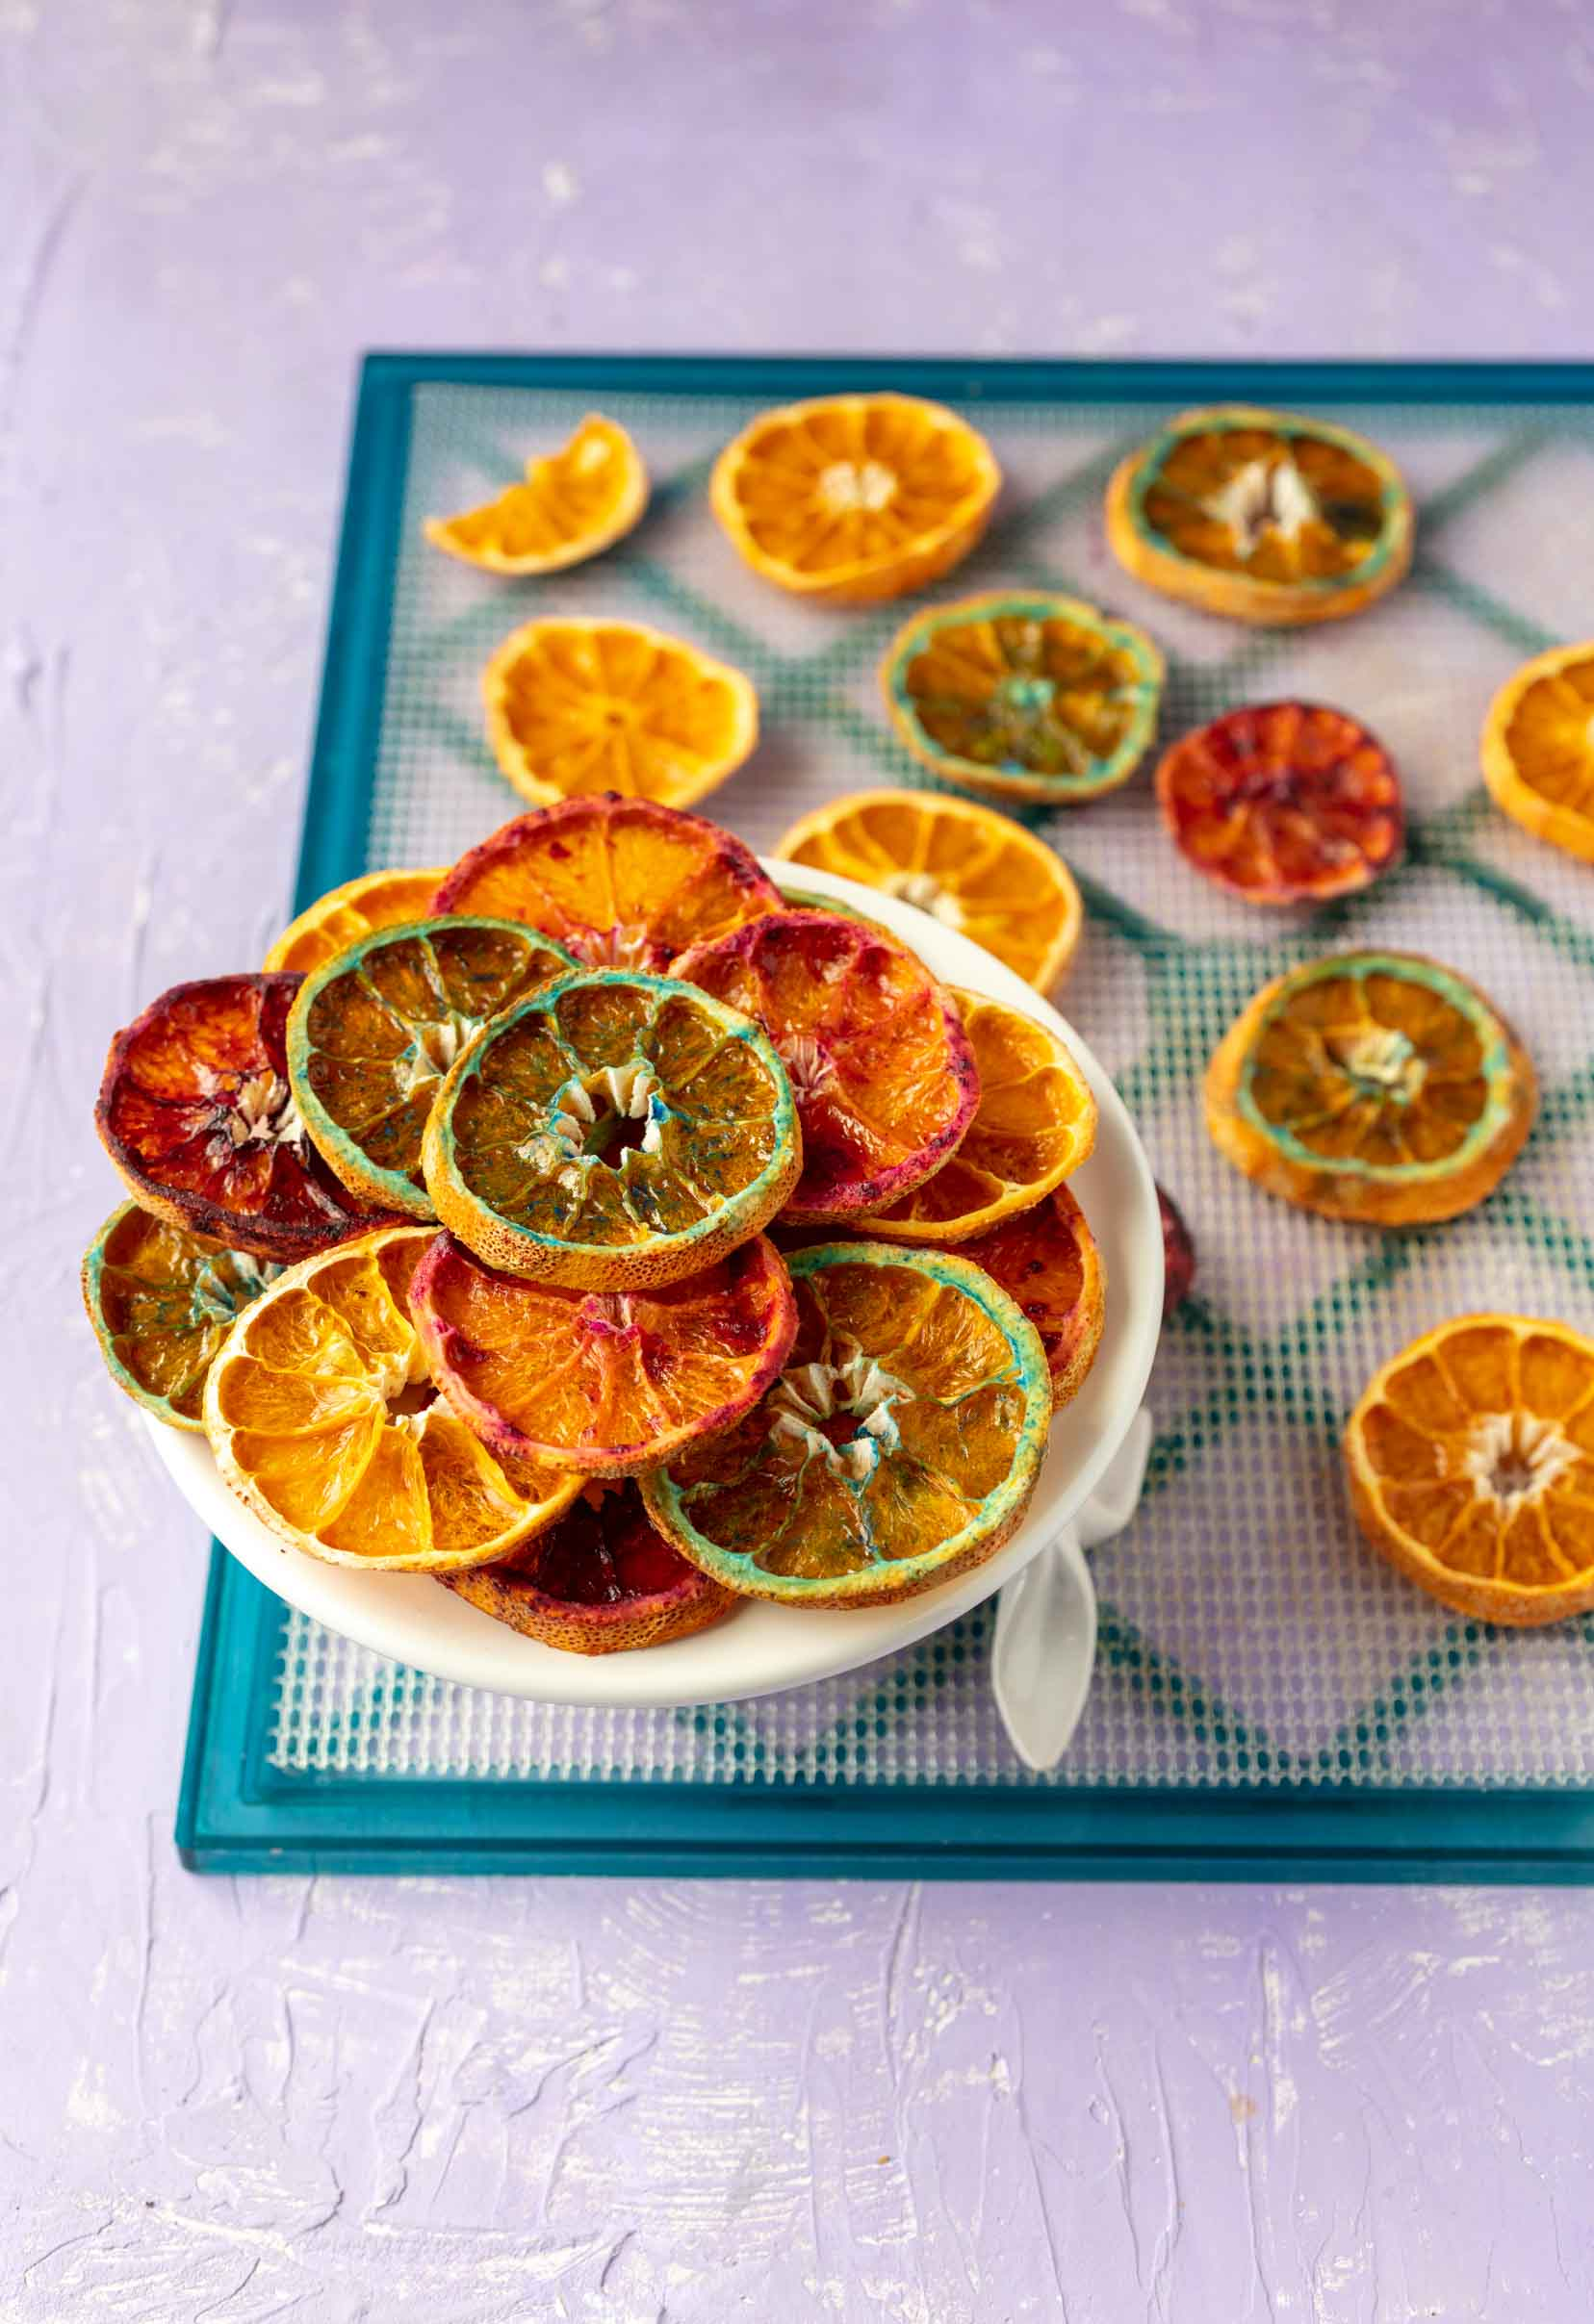 dehydrated candied orange slices